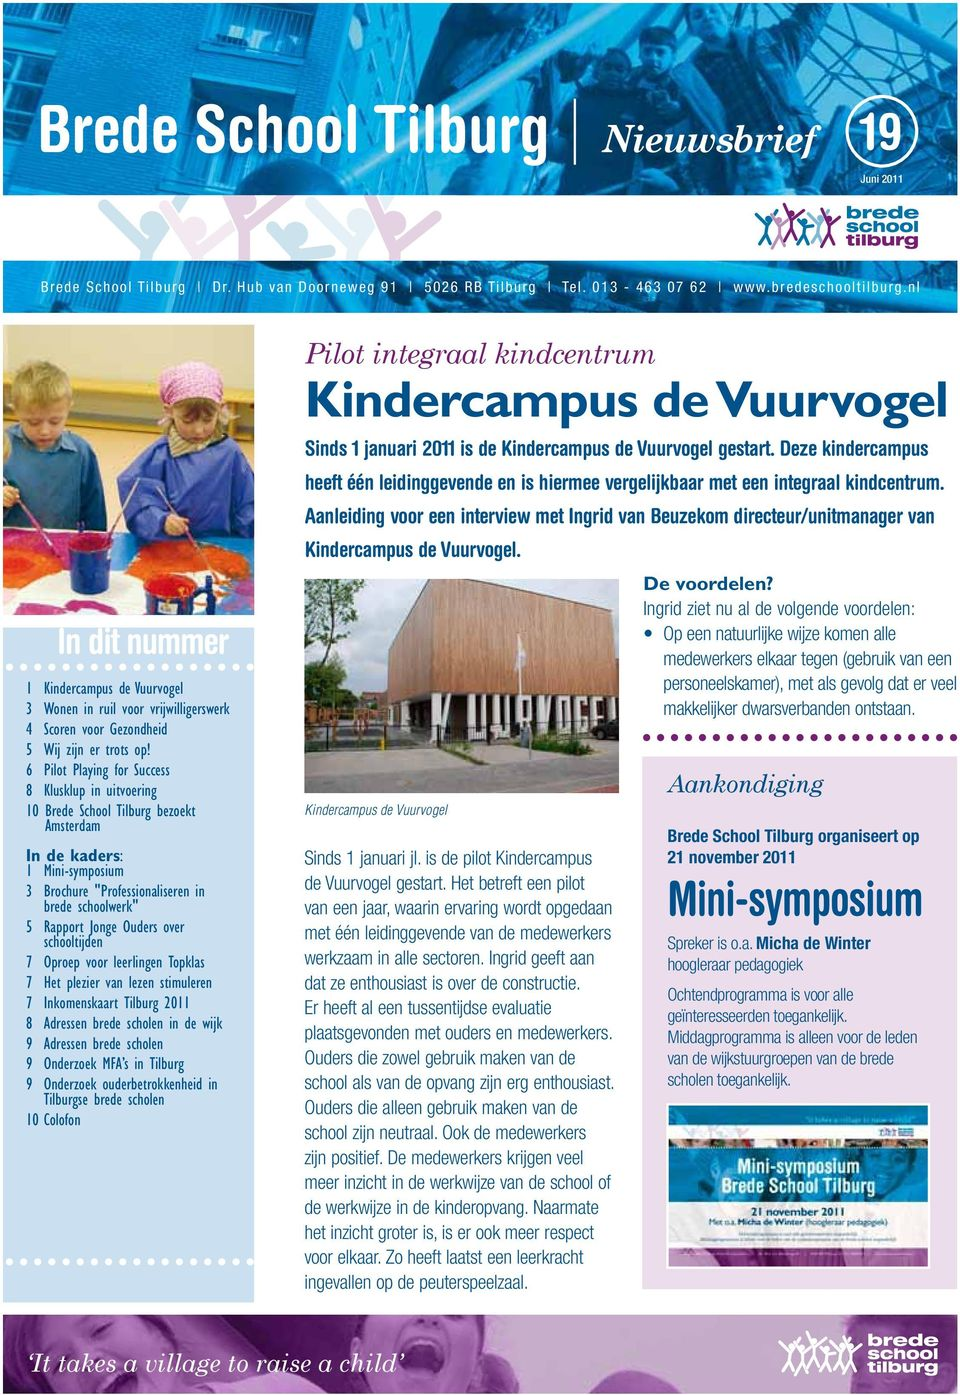 "6 Pilot Playing for Success 8 Klusklup in uitvoering 10 Brede School Tilburg bezoekt Amsterdam In de kaders: 1 Mini-symposium 3 Brochure ""Professionaliseren in brede schoolwerk"" 5 Rapport Jonge"